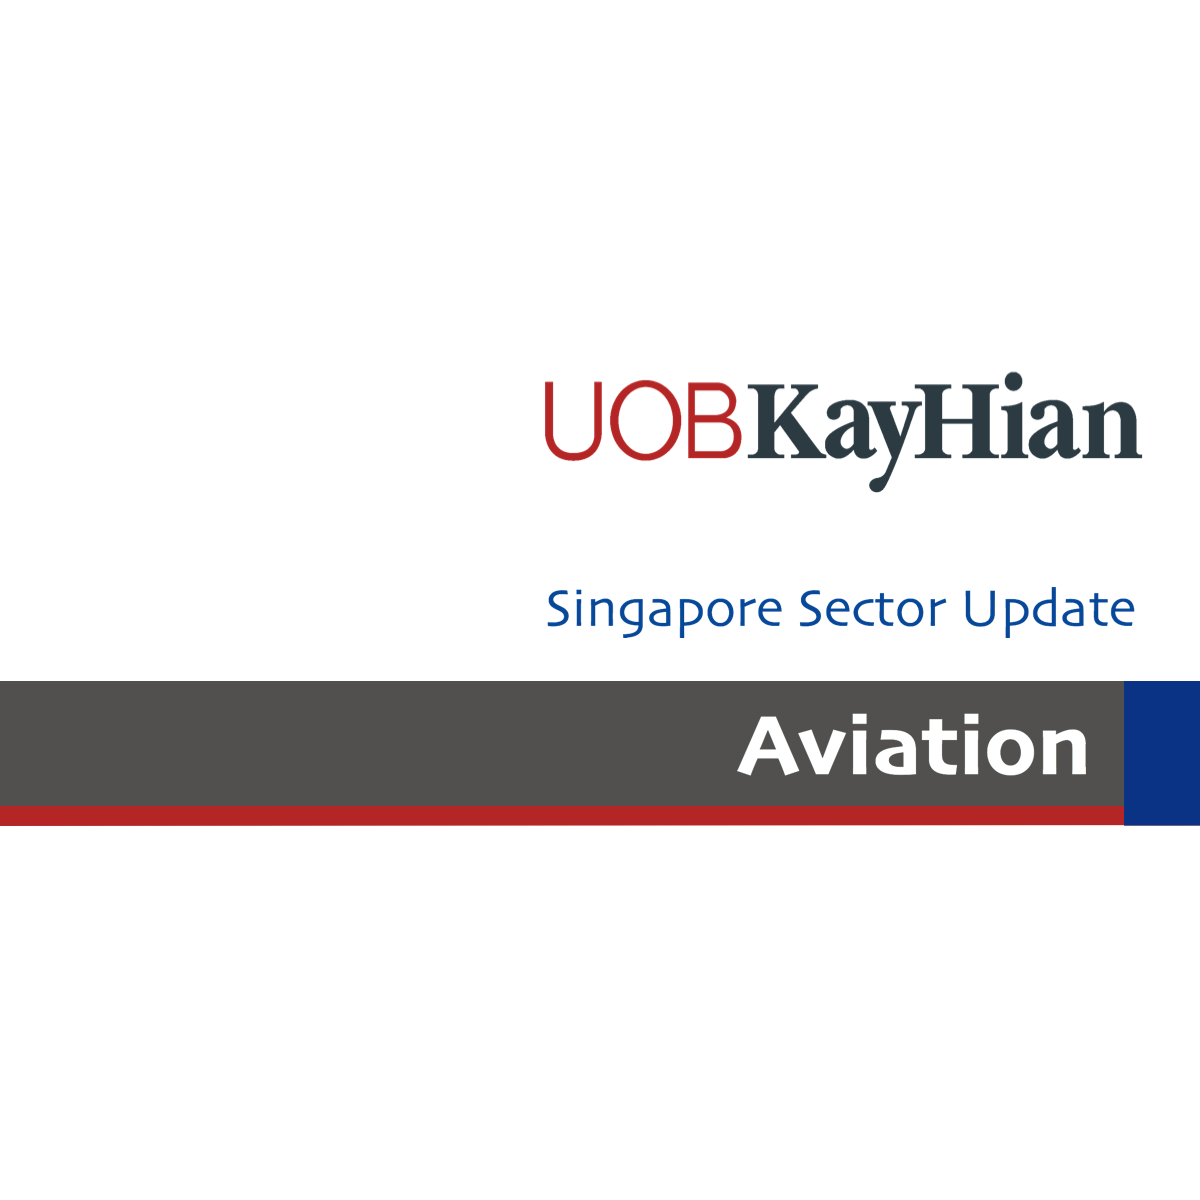 Aviation – Singapore - UOB Kay Hian 2017-04-05: Decline In Flight Movements Suggests Varying Fortunes For Airlines And Ground Handlers